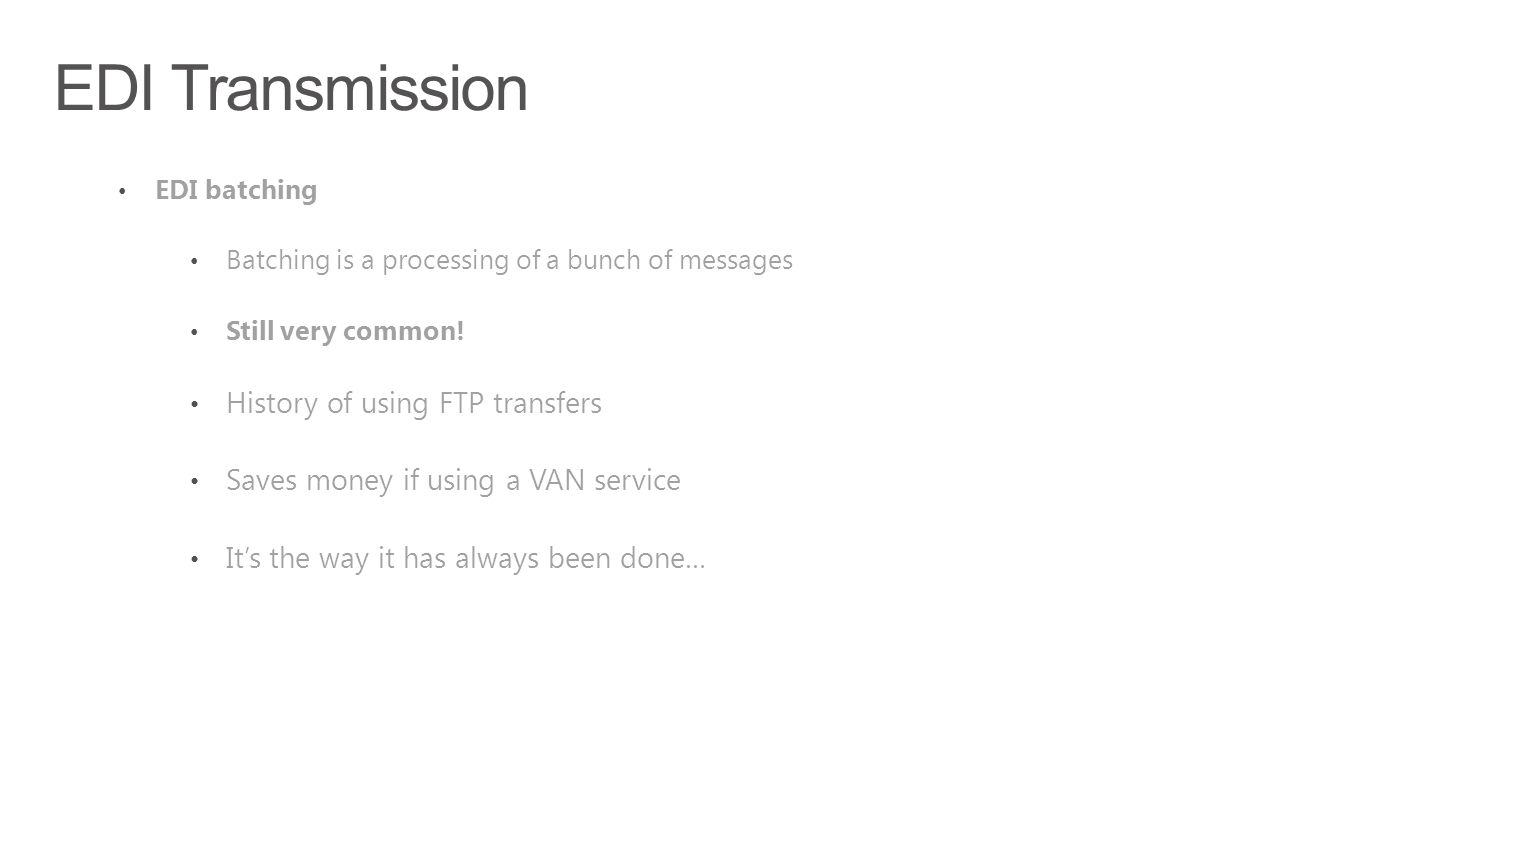 EDI Transmission EDI batching Batching is a processing of a bunch of messages Still very common! History of using FTP transfers Saves money if using a